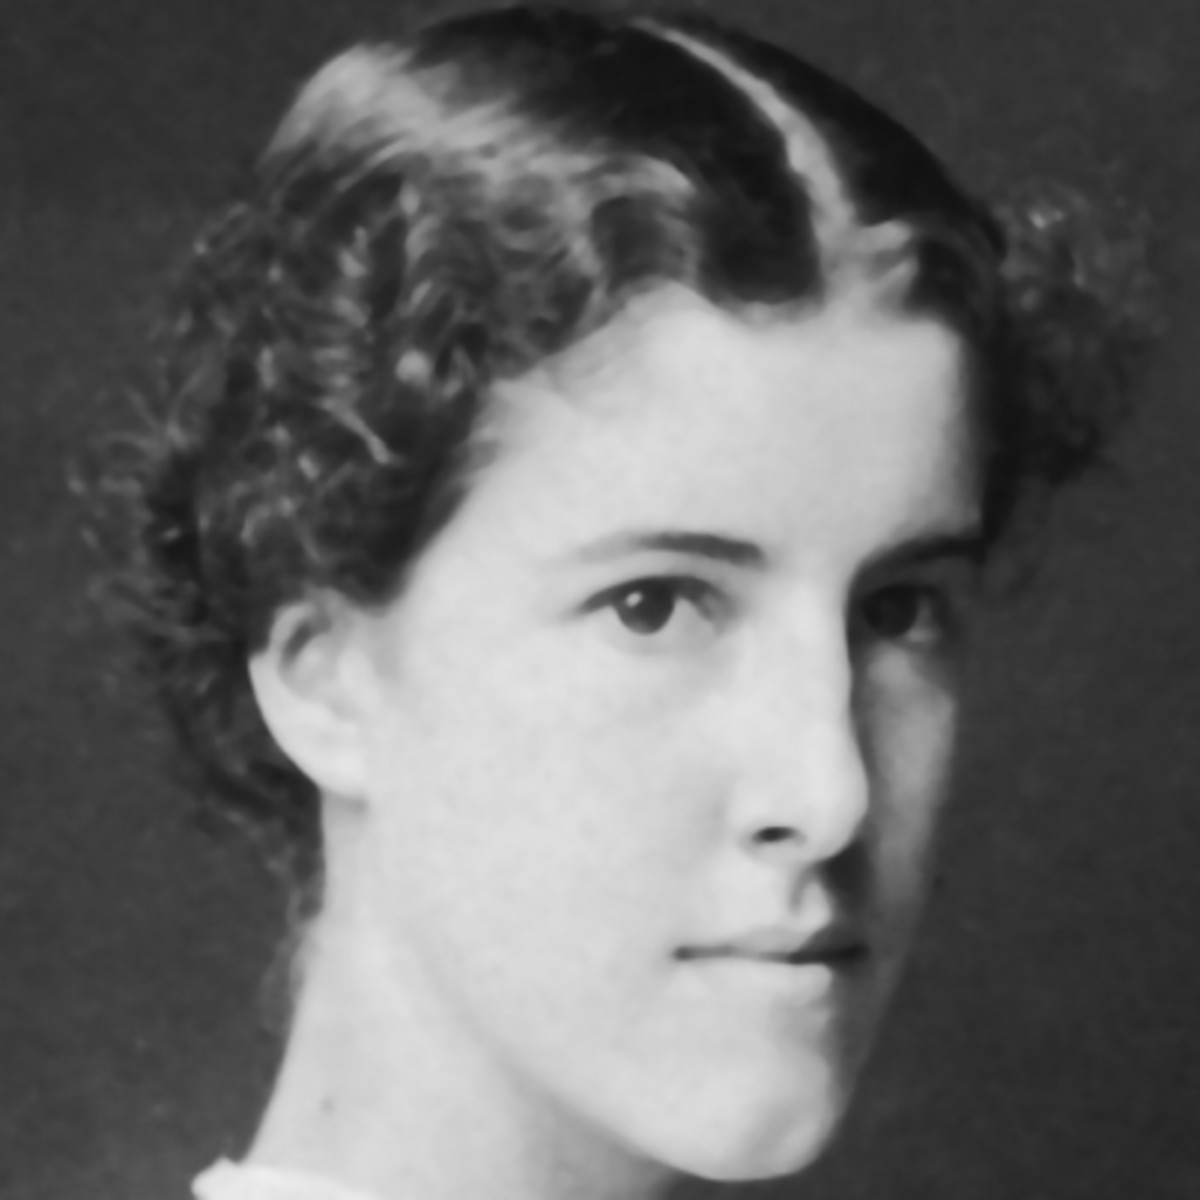 turned charlotte perkins gilman essays Charlotte perkins gilman this essay charlotte perkins gilman and other 63,000+ term papers, college essay examples and free essays are available now on reviewessayscom.